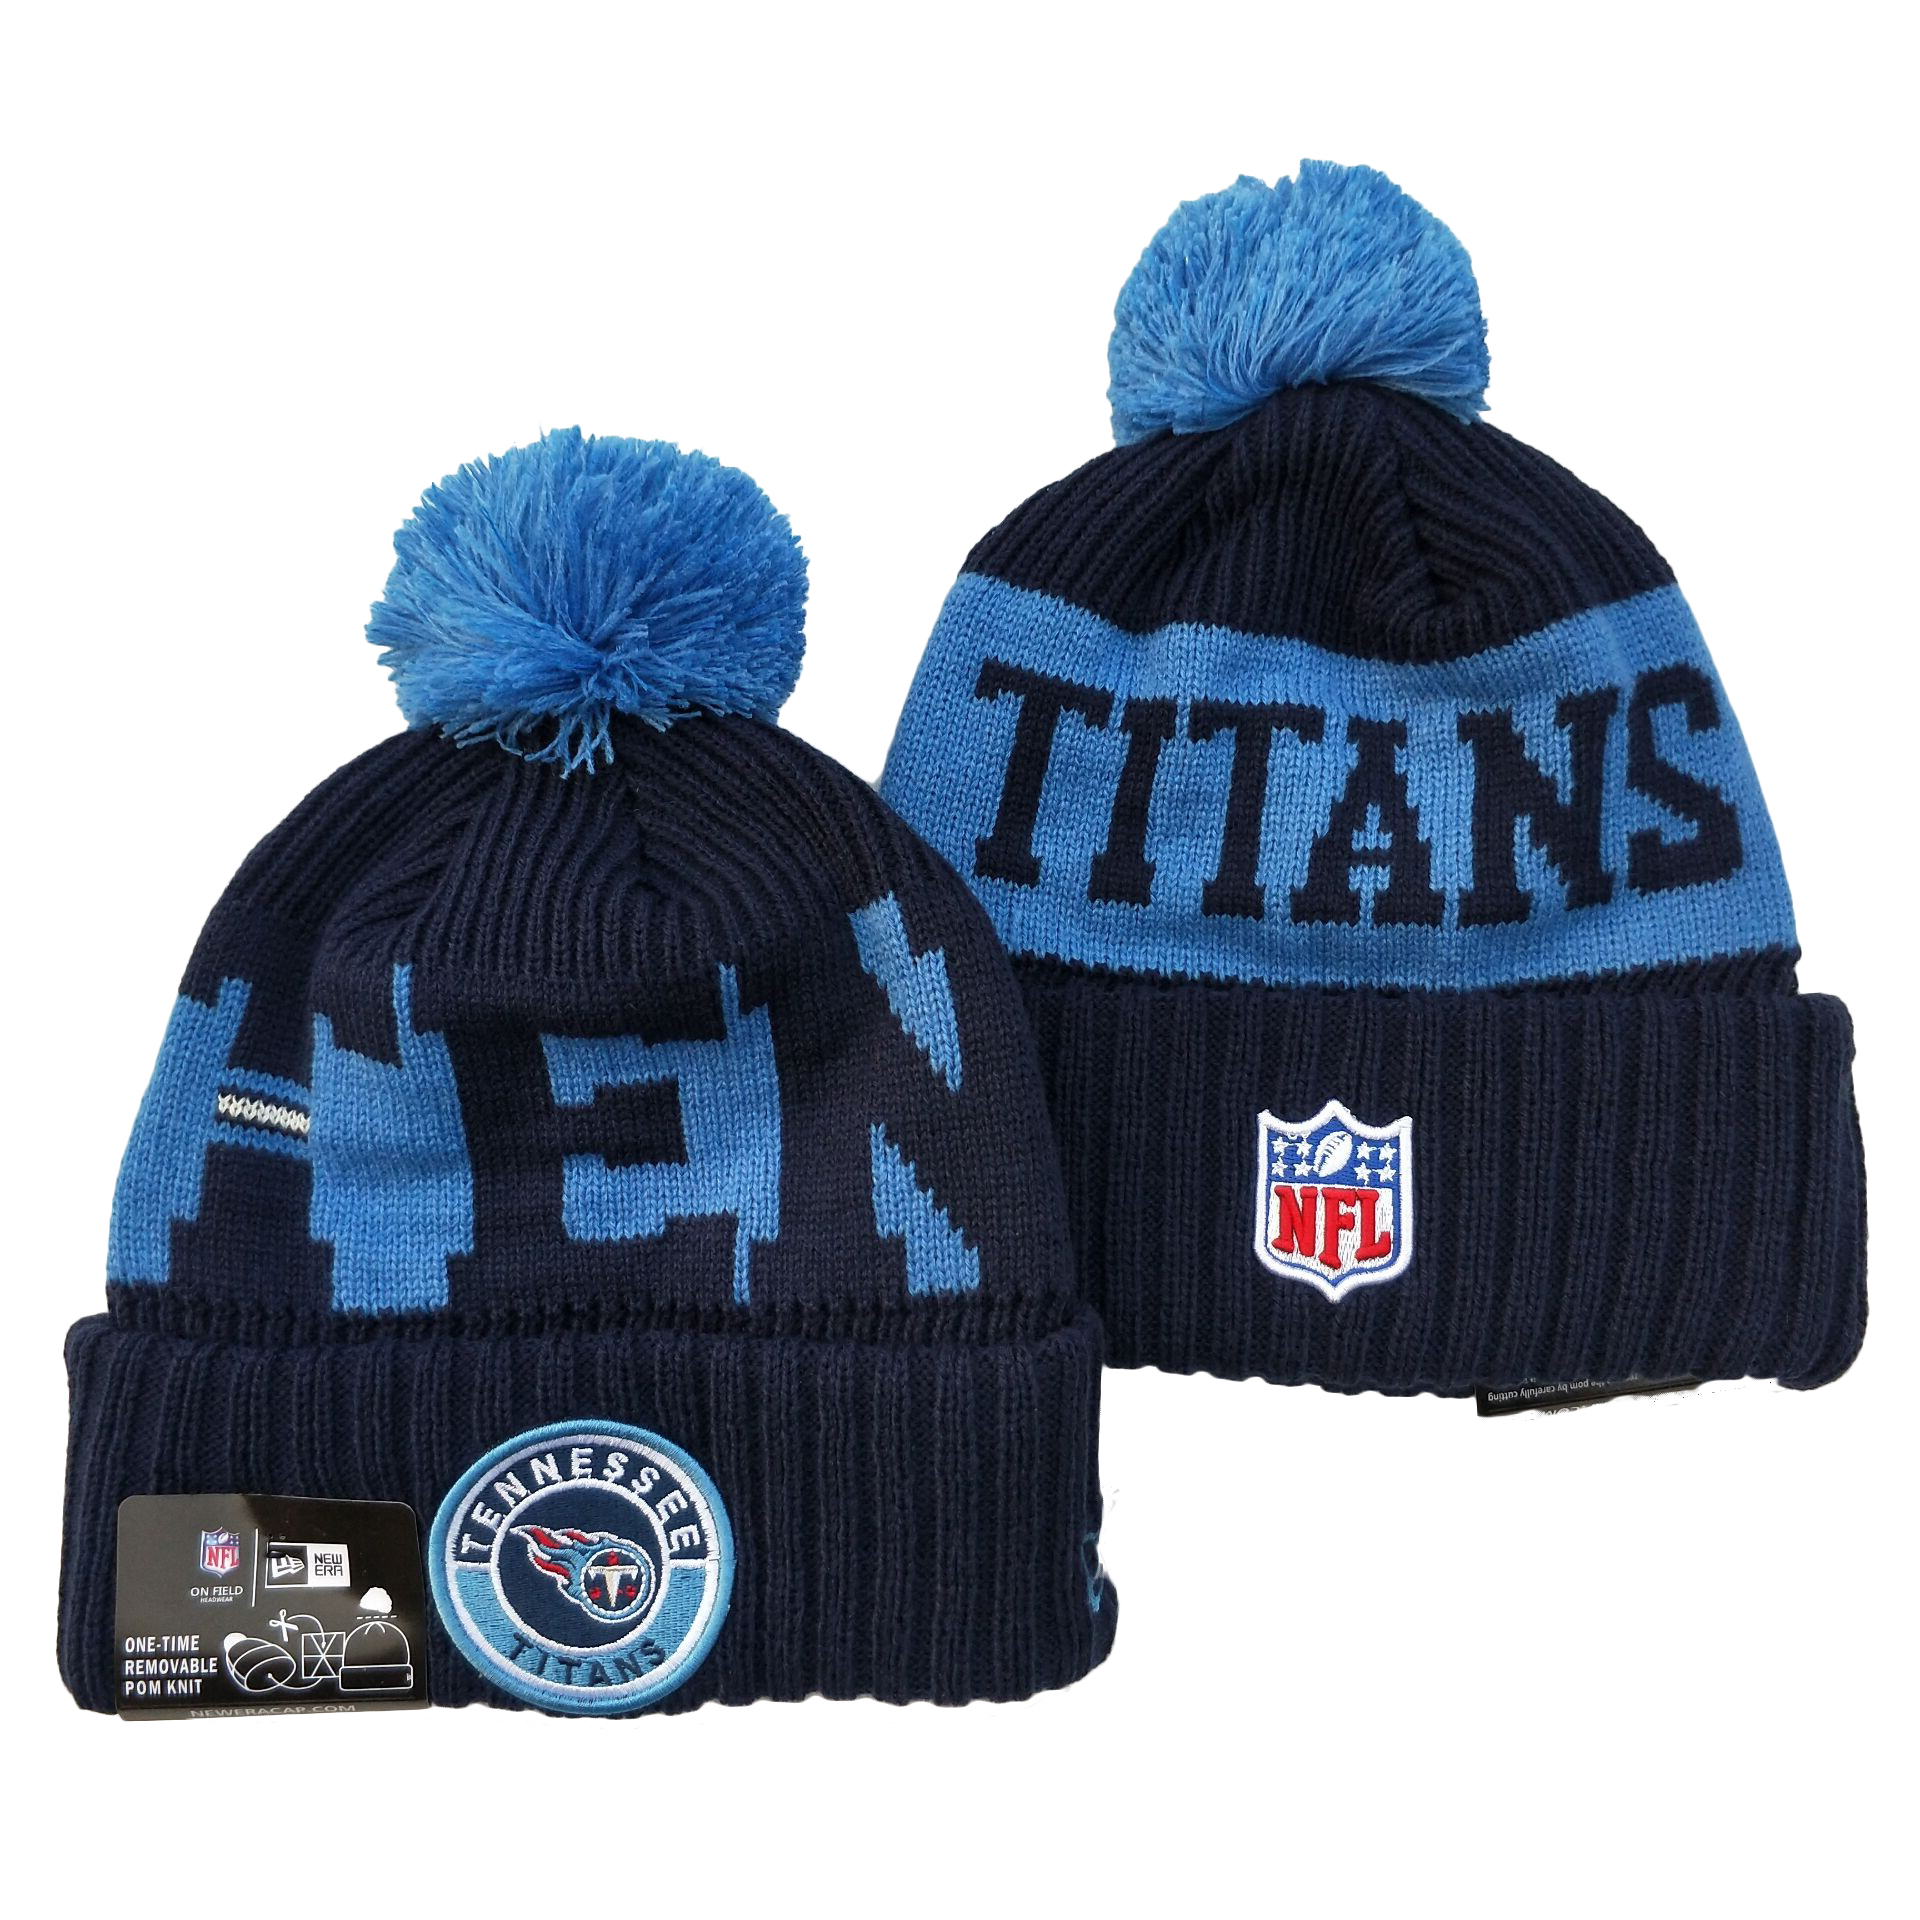 Tennessee Titans Knit Hats 034